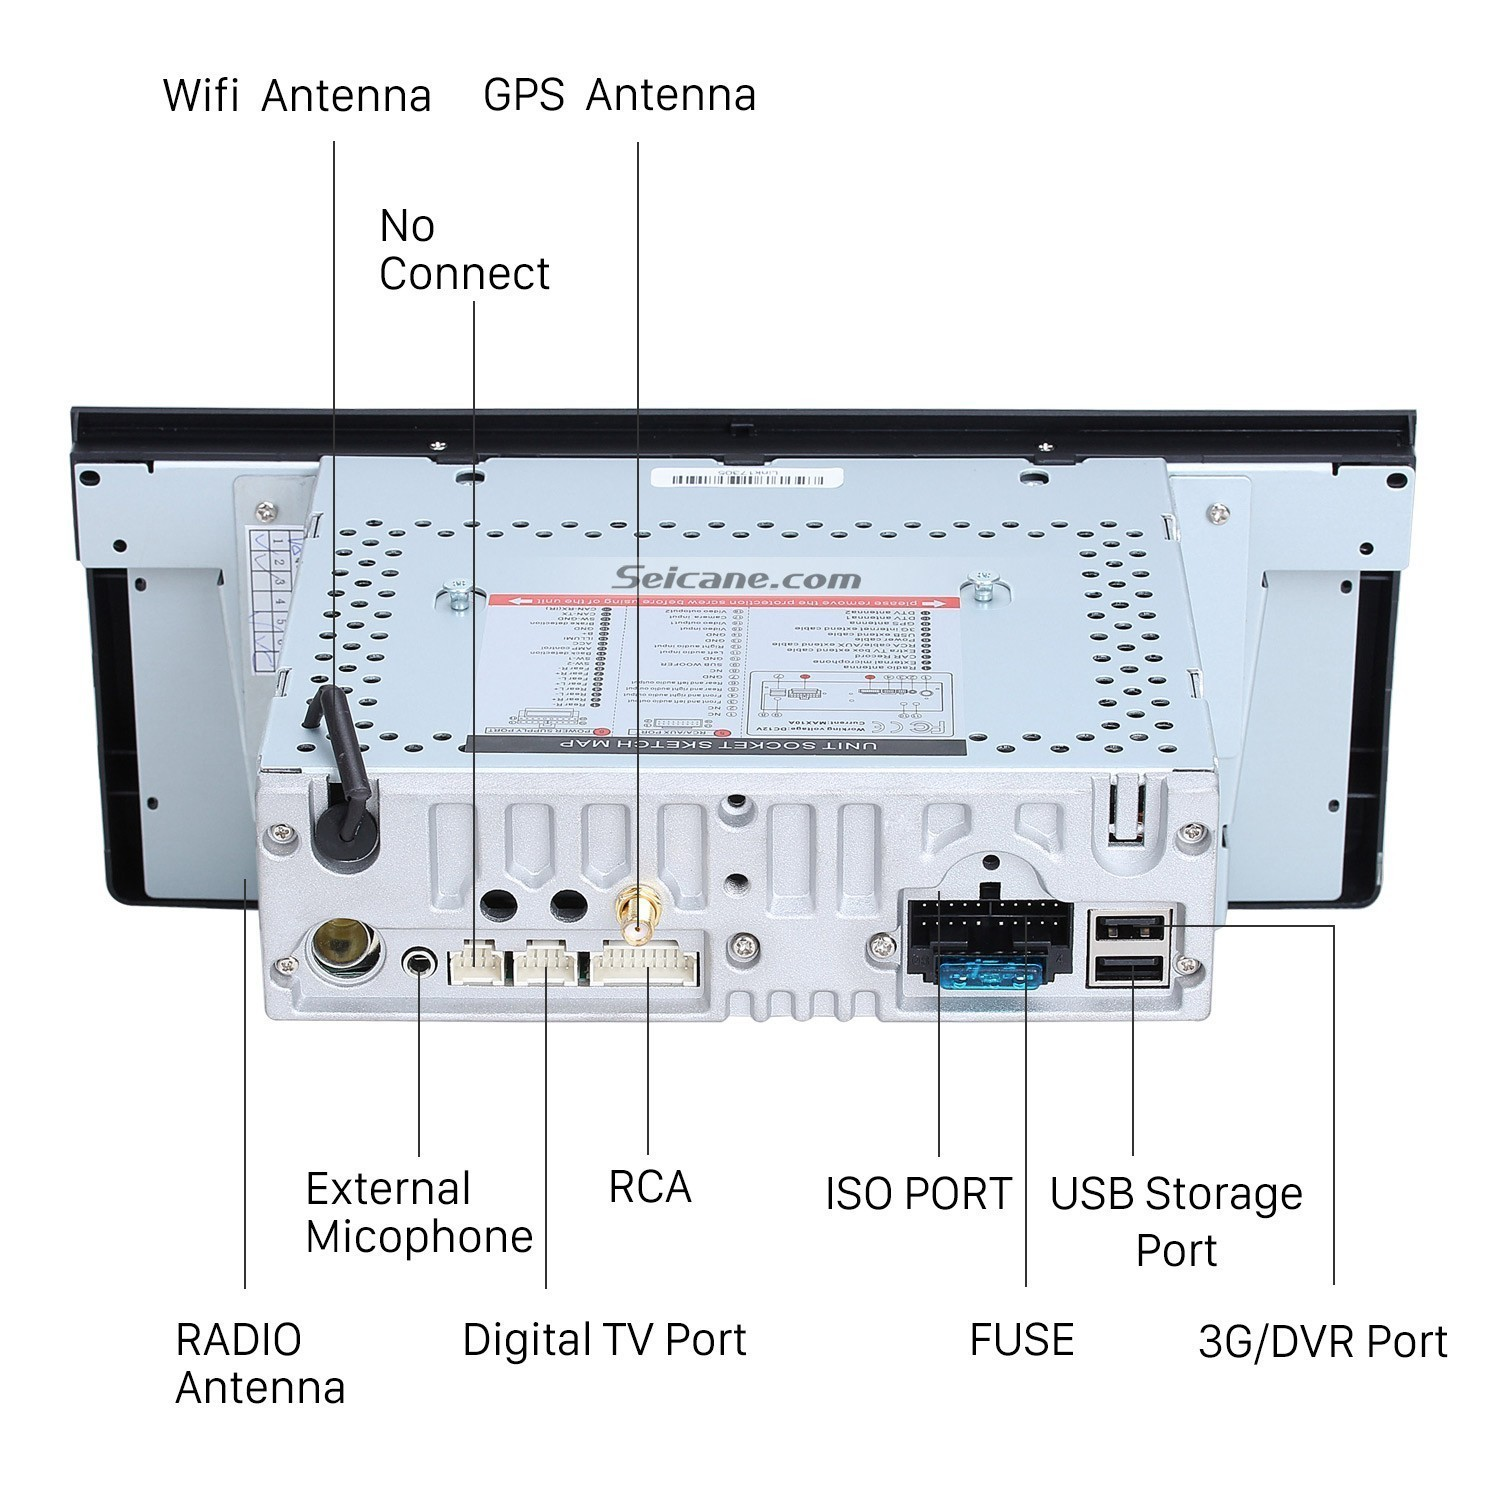 Klipsch Promedia 2 1 Wiring Diagram Wiring Diagram for Two Amplifiers New Car sound Wiring Diagram Of Klipsch Promedia 2 1 Wiring Diagram